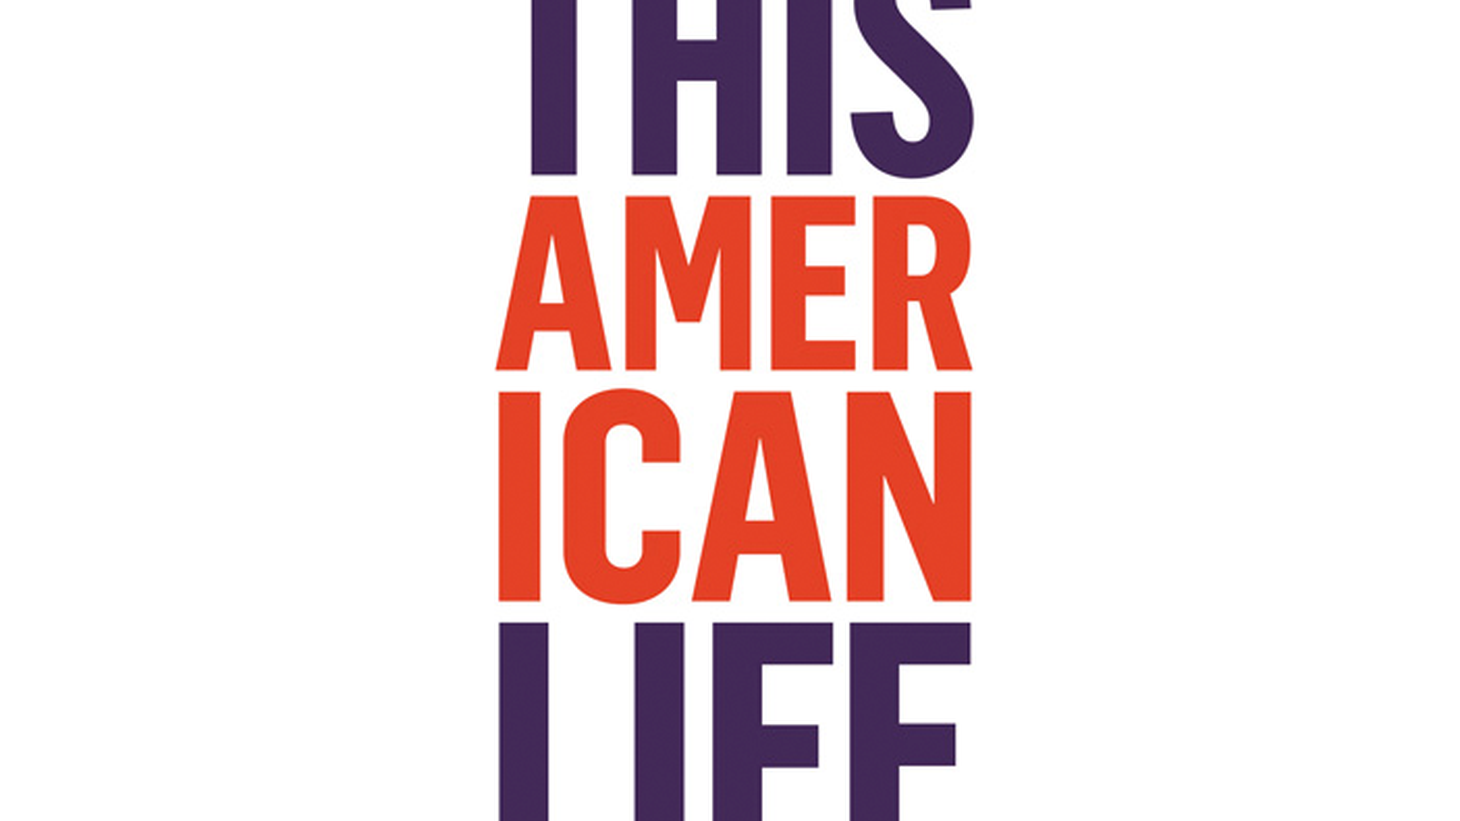 As we head into           Presidential primary season, This American Life reruns the           most memorable political stories from the 1996 elections.   Dan Savage explains why a homosexual sex advice columnist and former  drag queen like himself decided to become an activist in the Republican  Party, and how the Republican's &quotBig Tent&quot philosophy seemed barely  able to contain him. Journalist Michael Lewis reads from some of his  most memorable campaign diaries. And other stories.